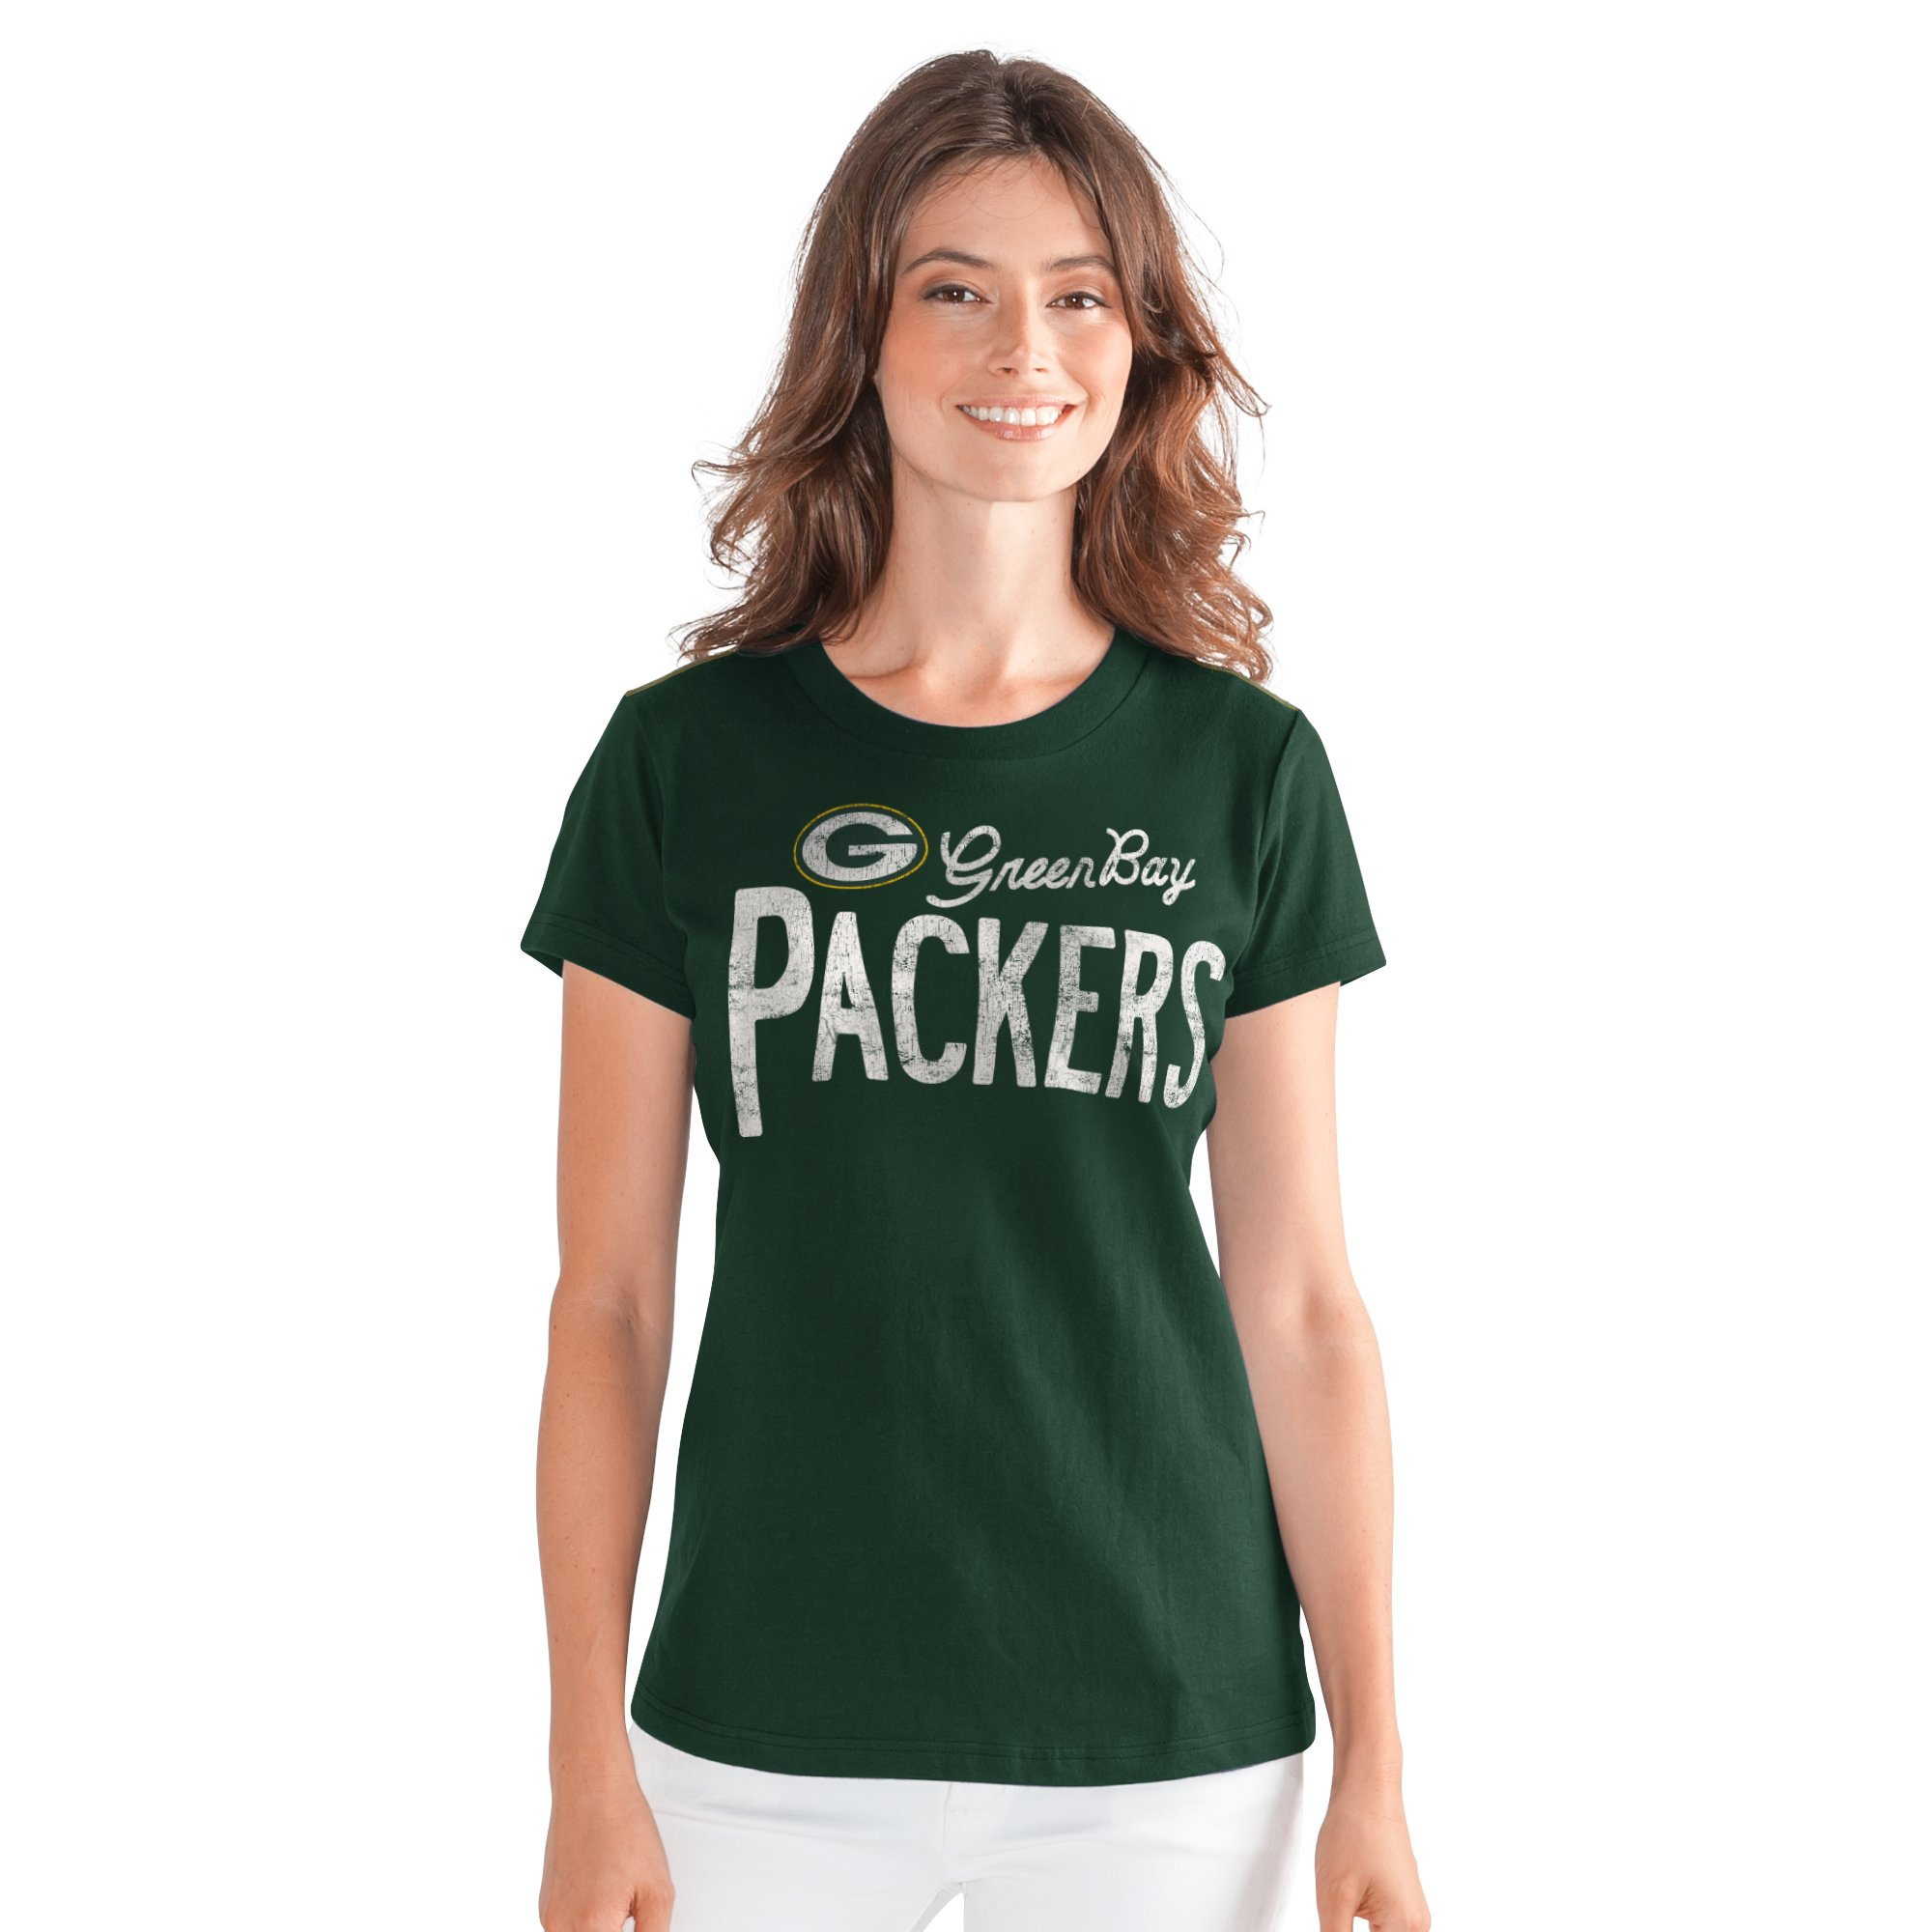 Green bay Packers Women's Crew Neck T-Shirt by